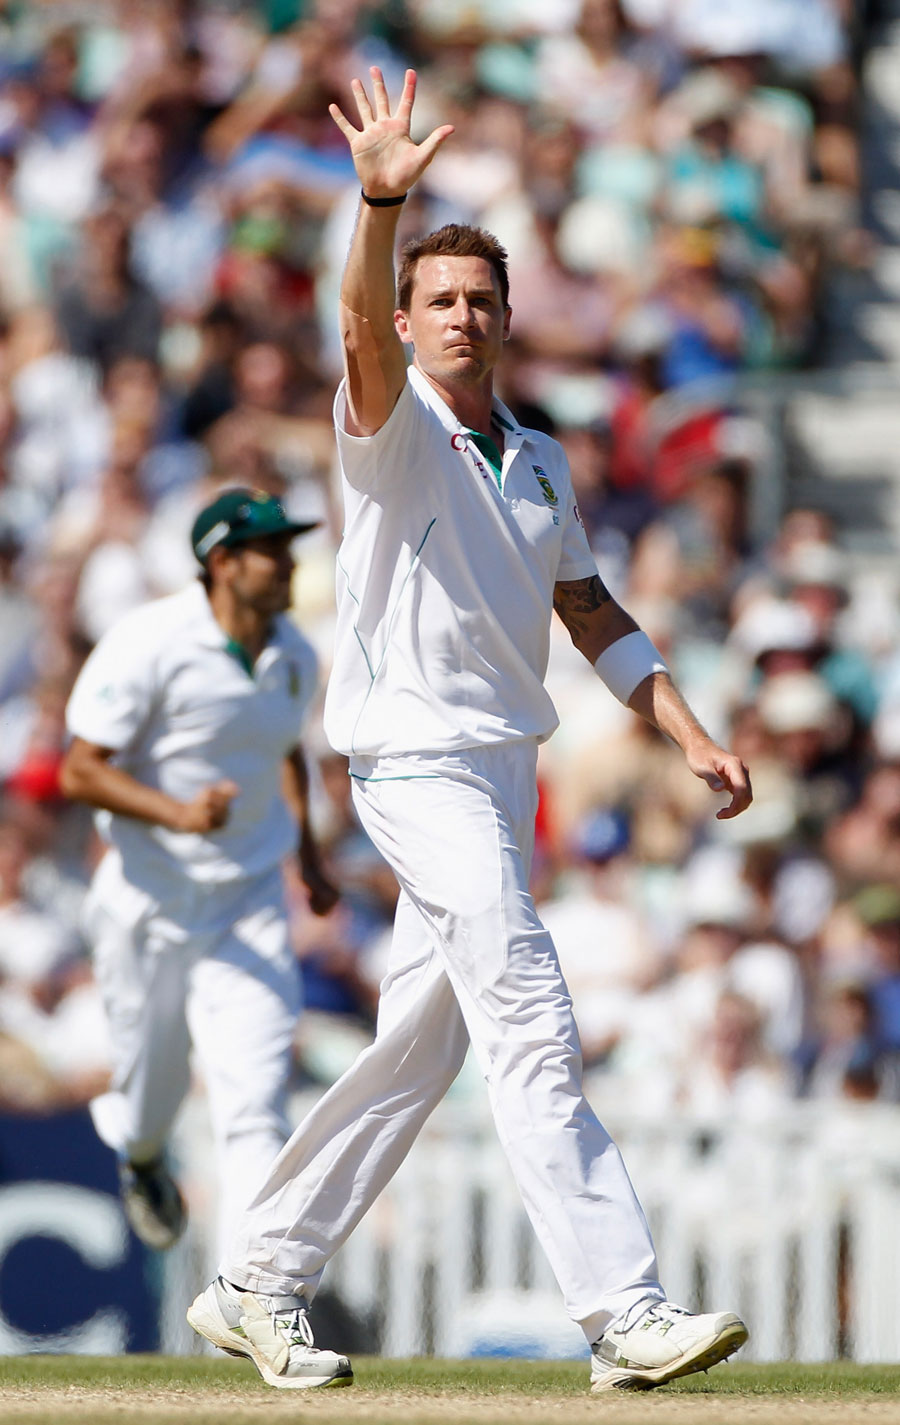 Dale Steyn dismissed Graeme Swann to claim his fifth wicket, England v South Africa, 1st Test, The Oval, 5th day, July 23, 2012